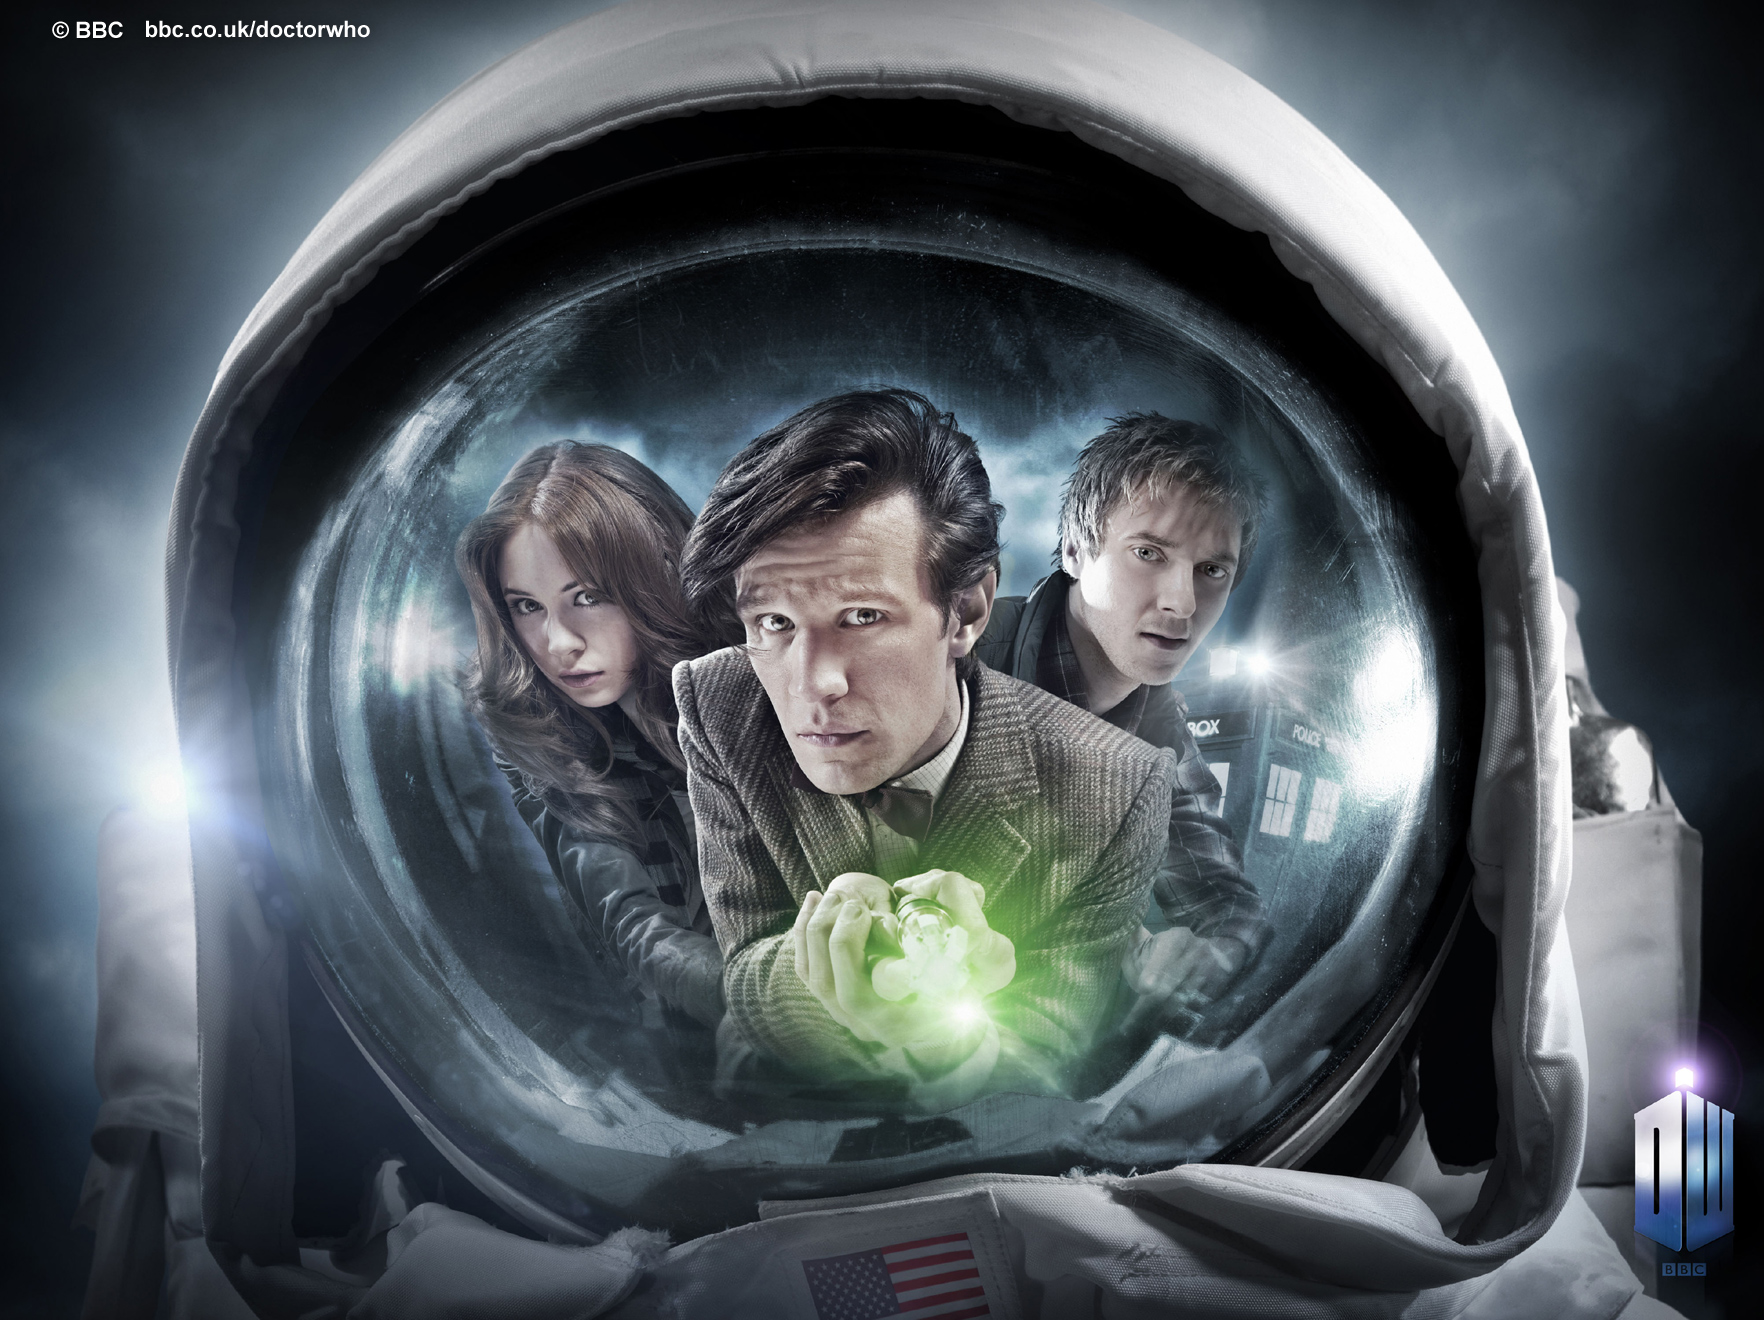 Doctor Who Series 6: The Impossible Astronaut promo. picture.